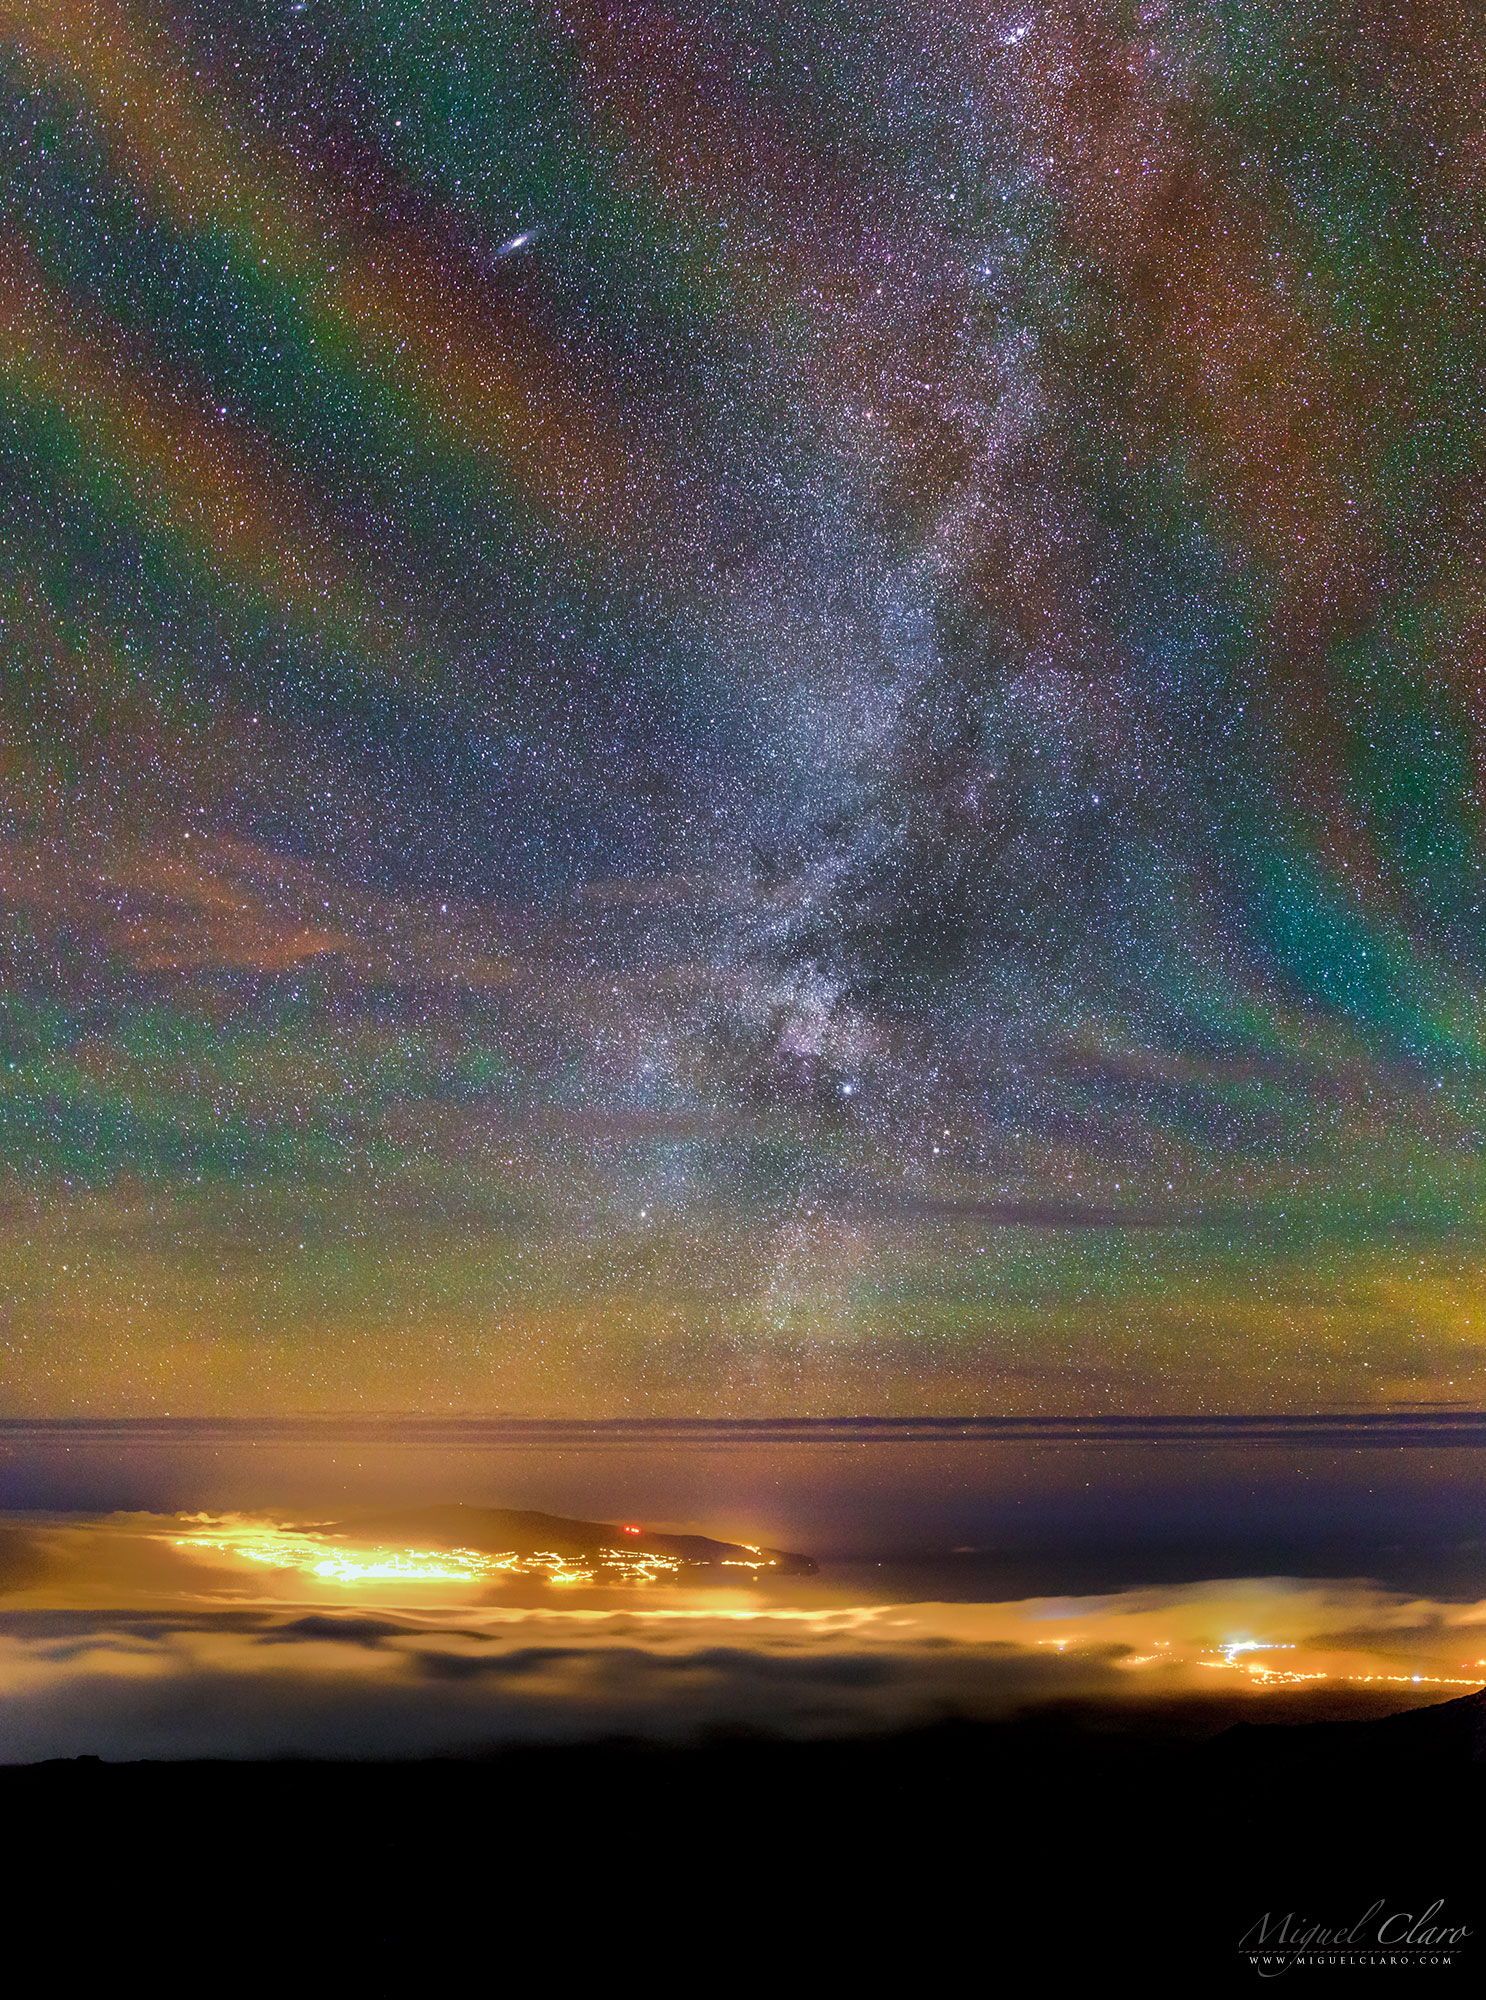 APOD: 2021 April 18 - Rainbow Airglow over the Azores